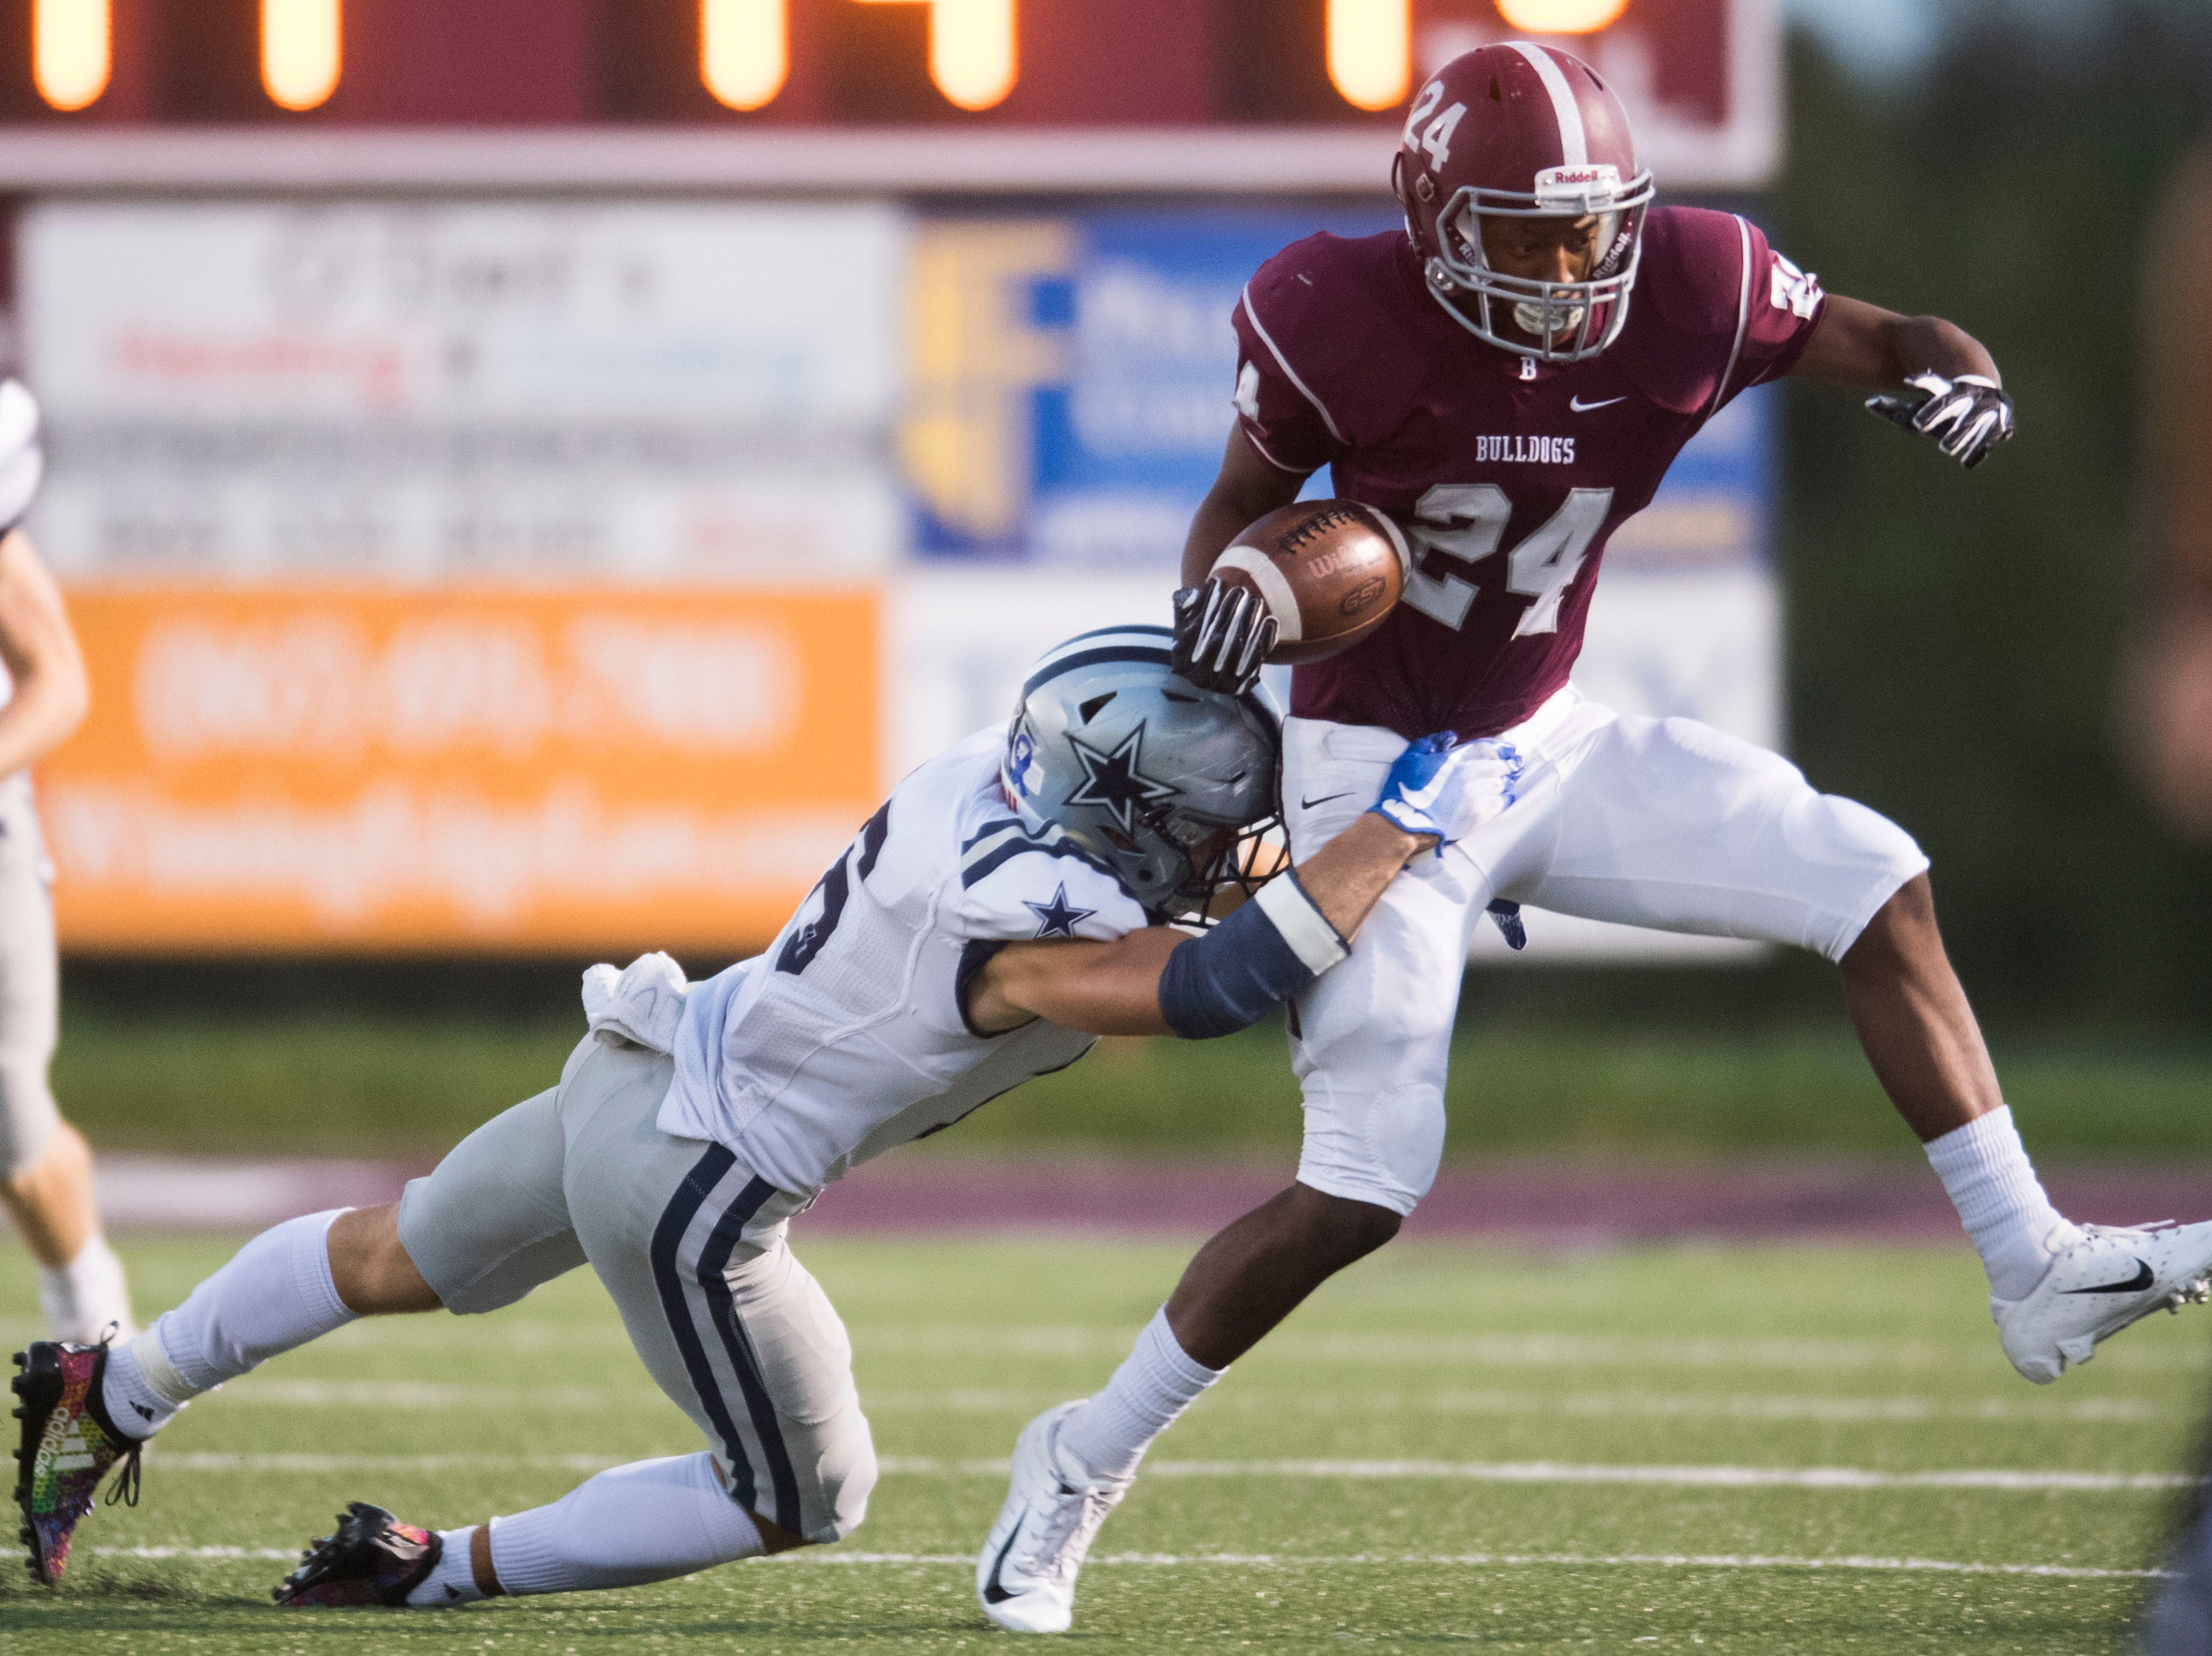 Bearden's DJ Cox (24) is taken down by Farragut's Tanner Corum (16) during a game between Bearden and Farragut at Bearden Thursday, Oct. 11, 2018. Bearden took down Farragut 17-13.